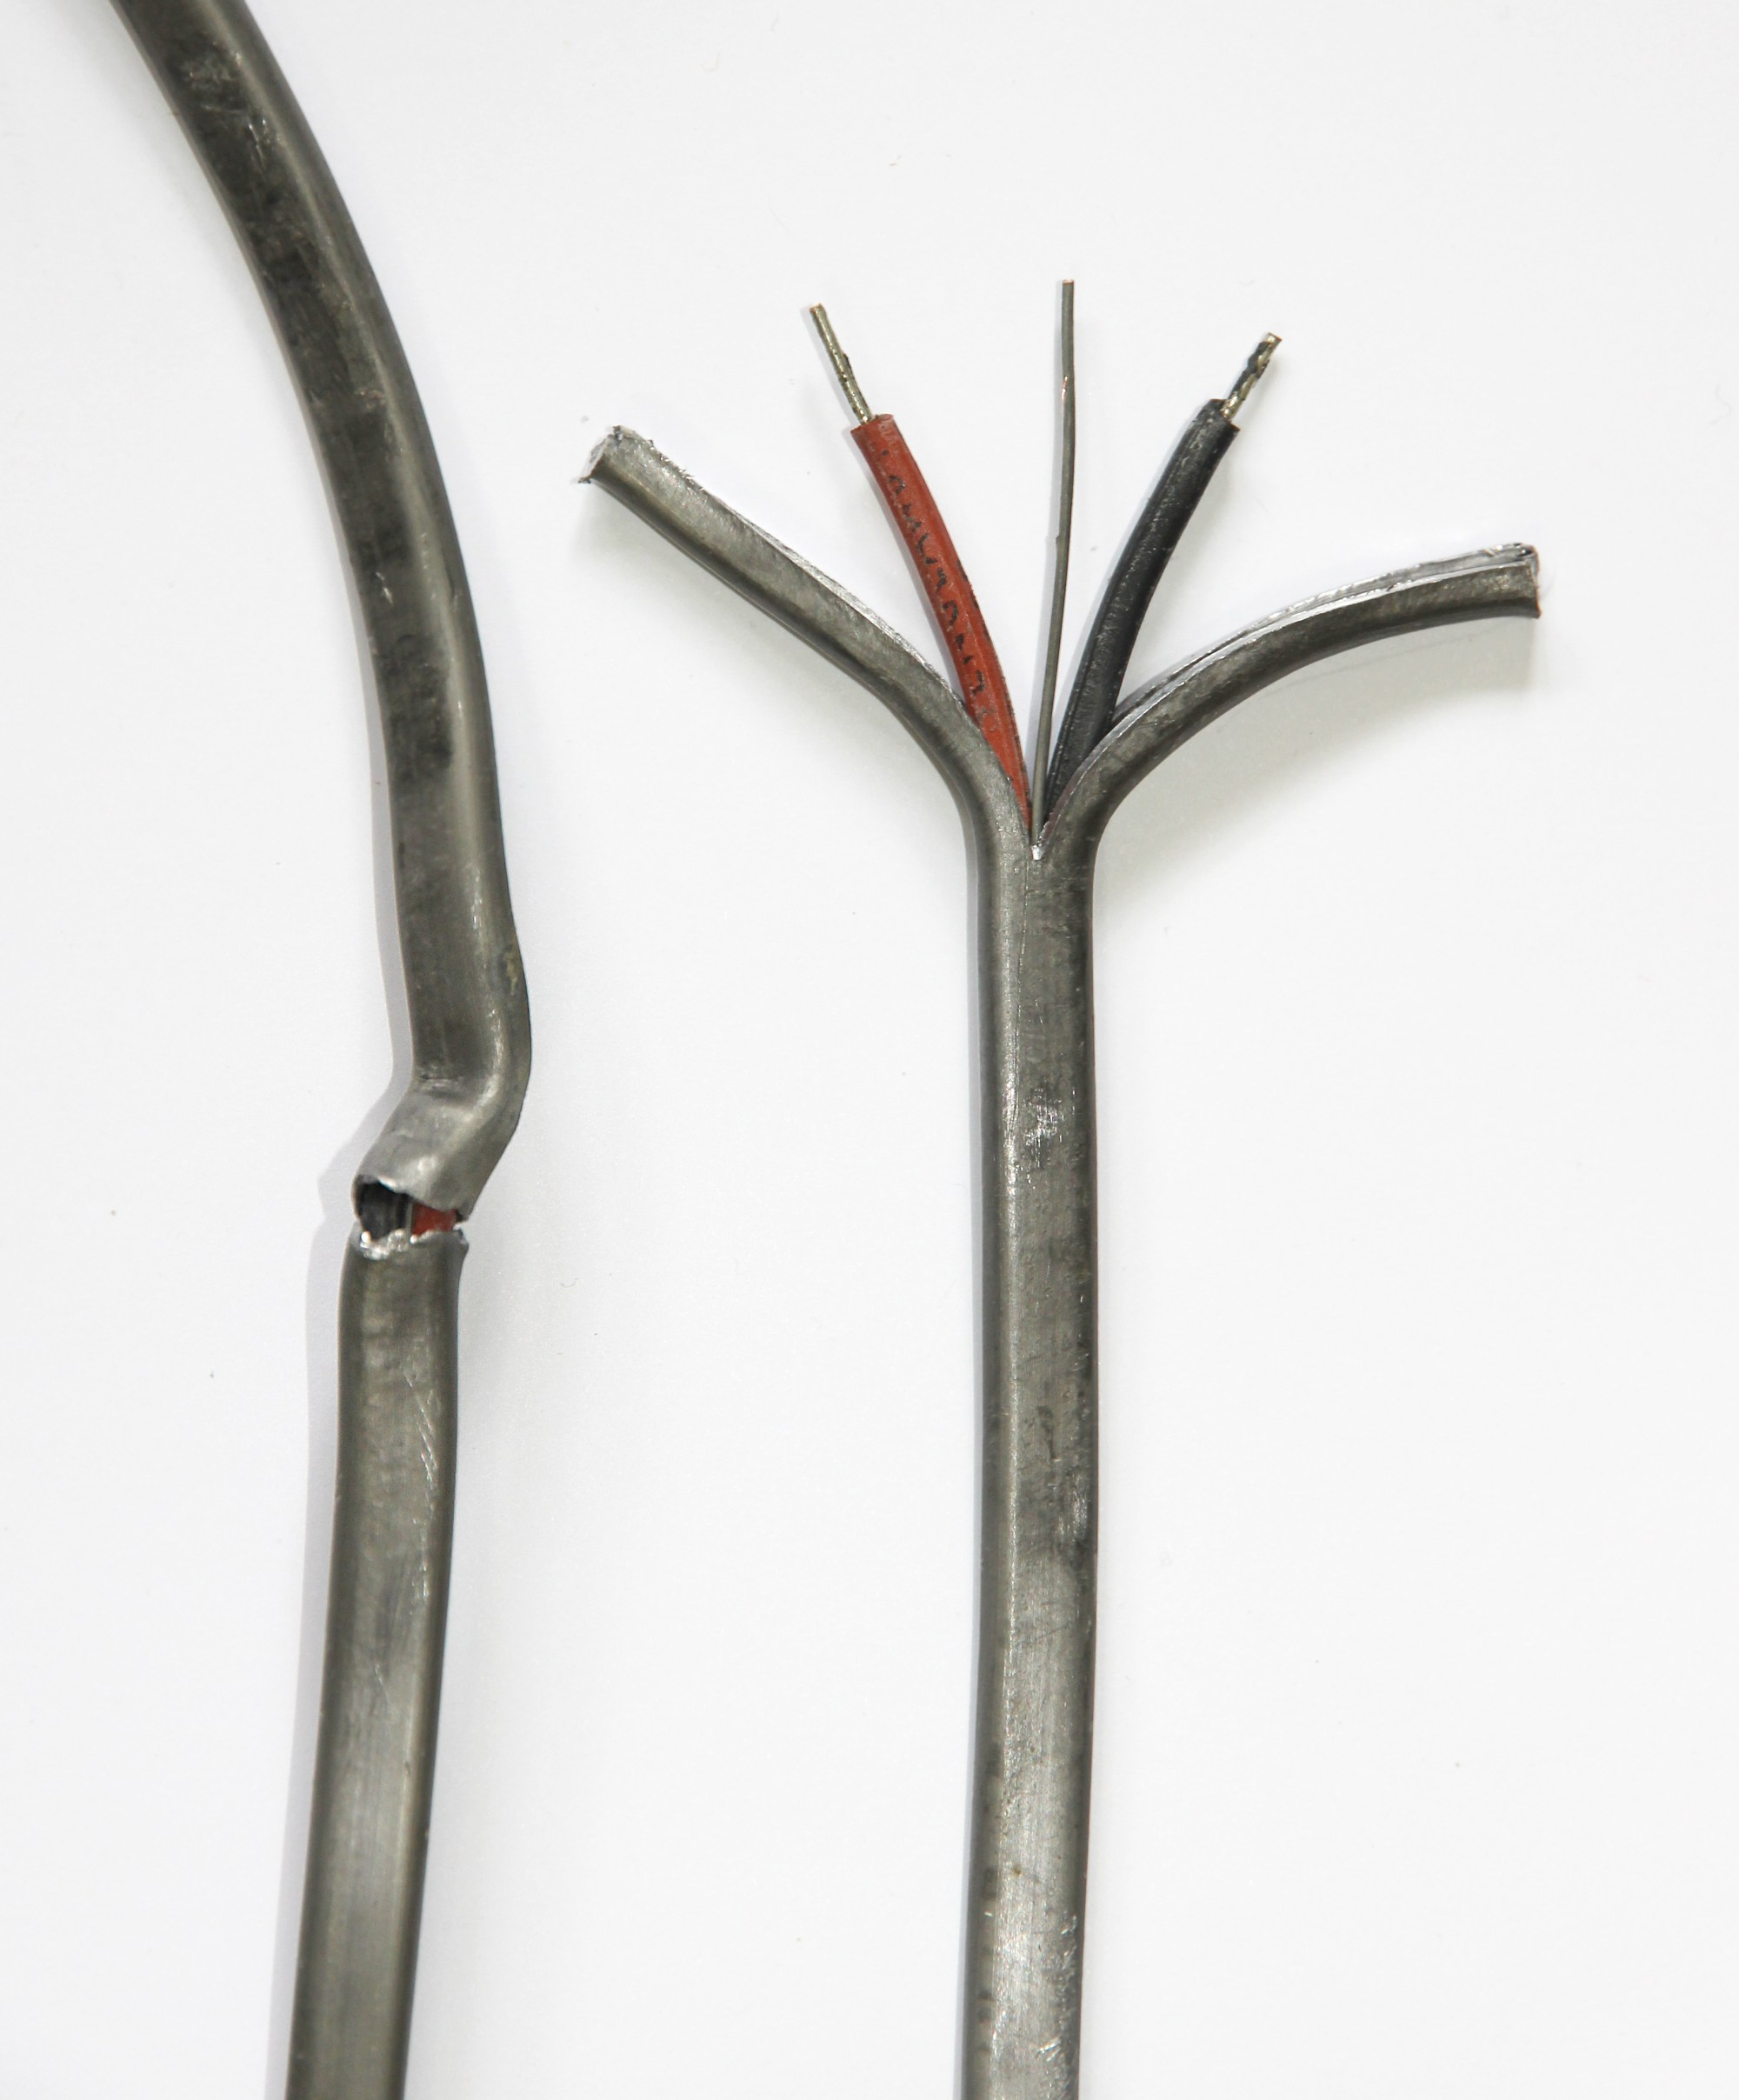 hight resolution of file lead cased electrical wire from a circa 1912 house on southern england jpg